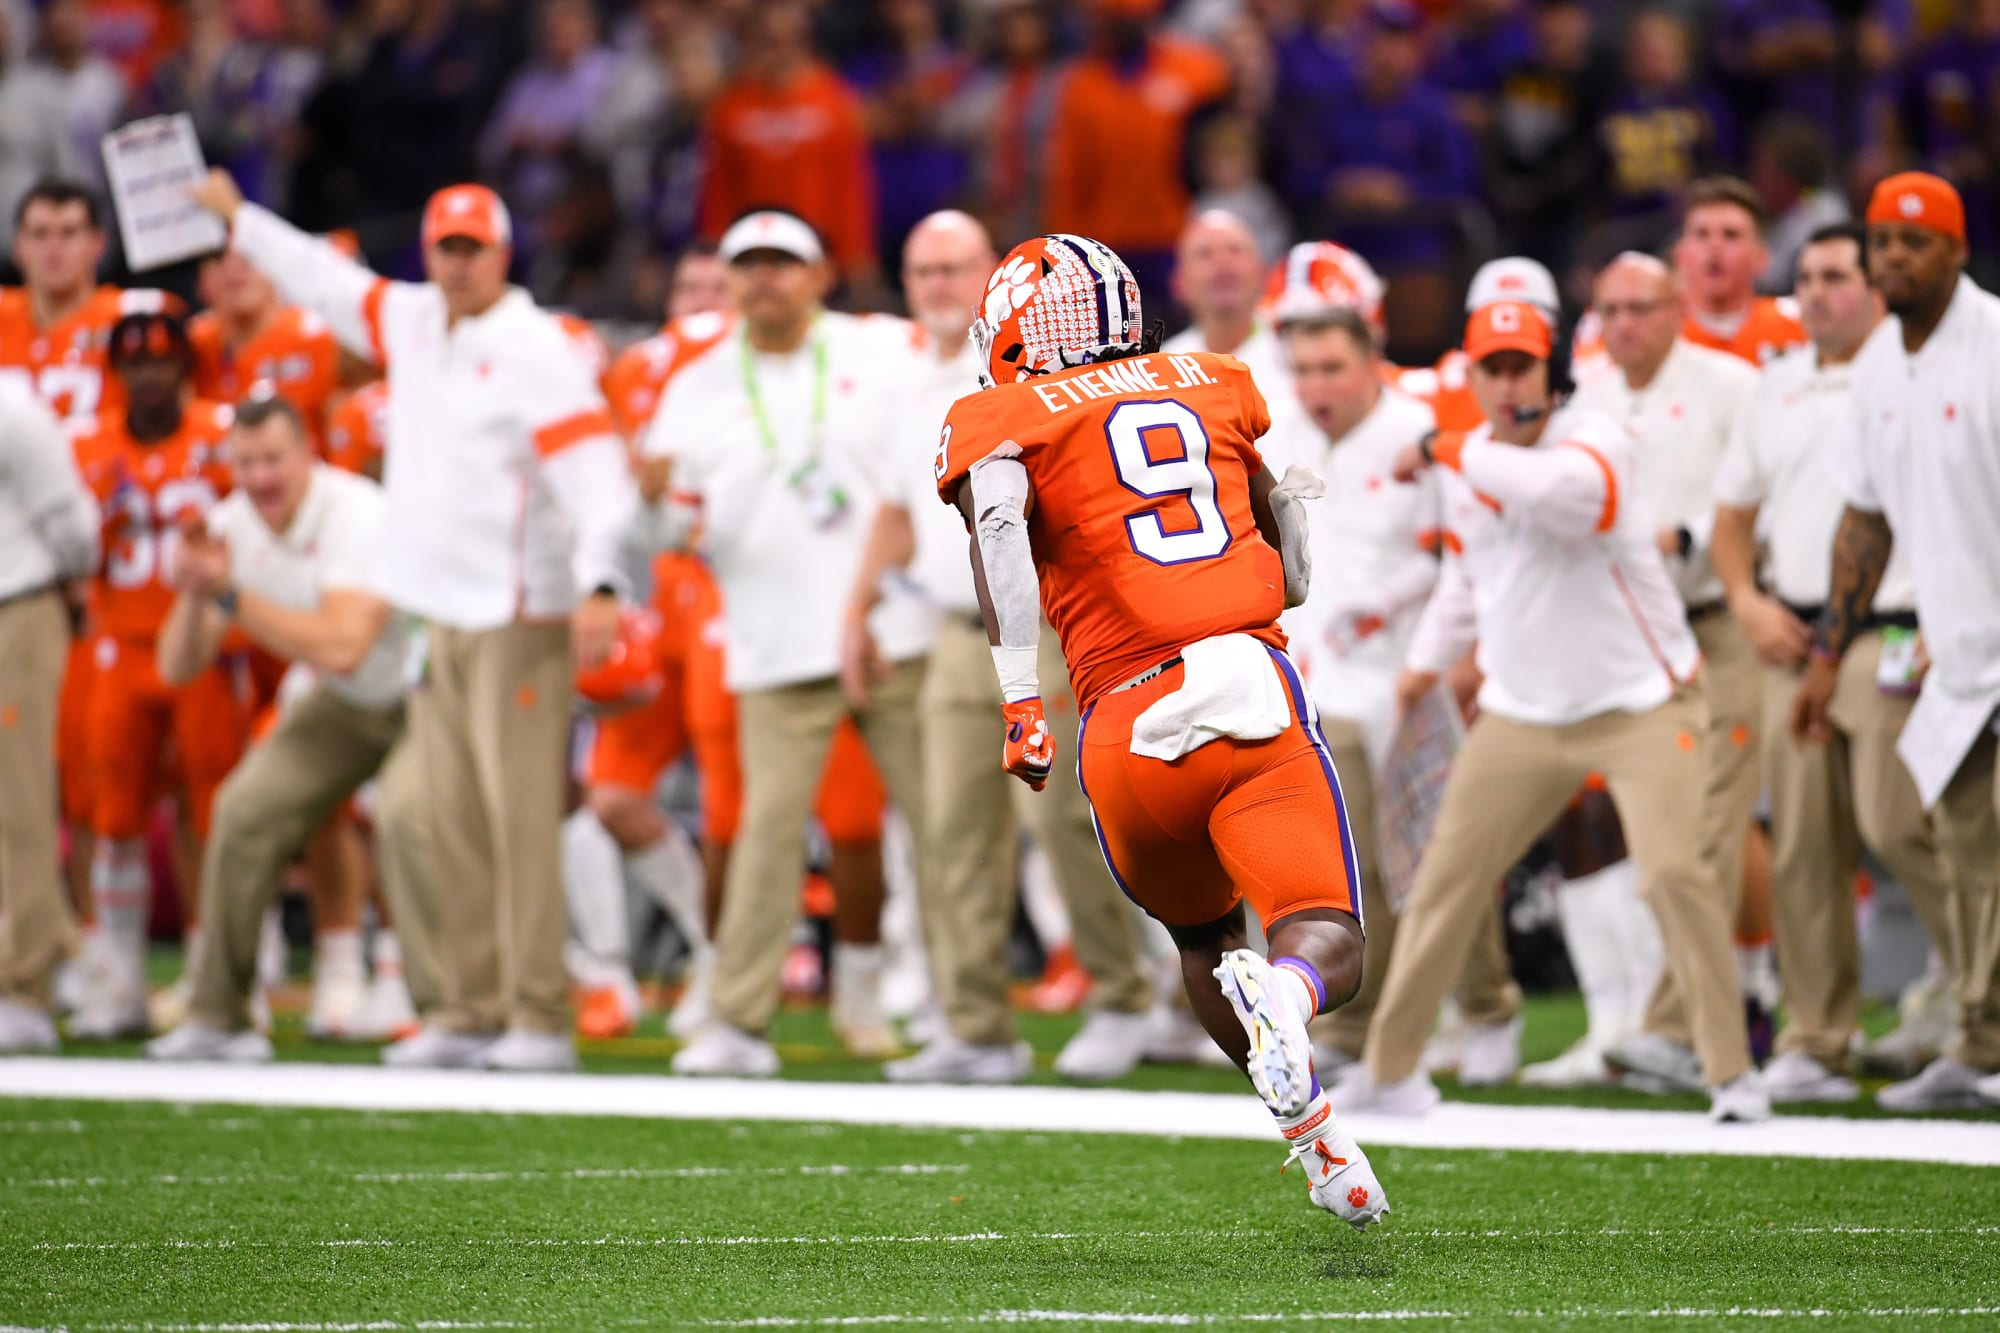 clemson tigers football conference super dominate college travis national superdome benz mercedes would